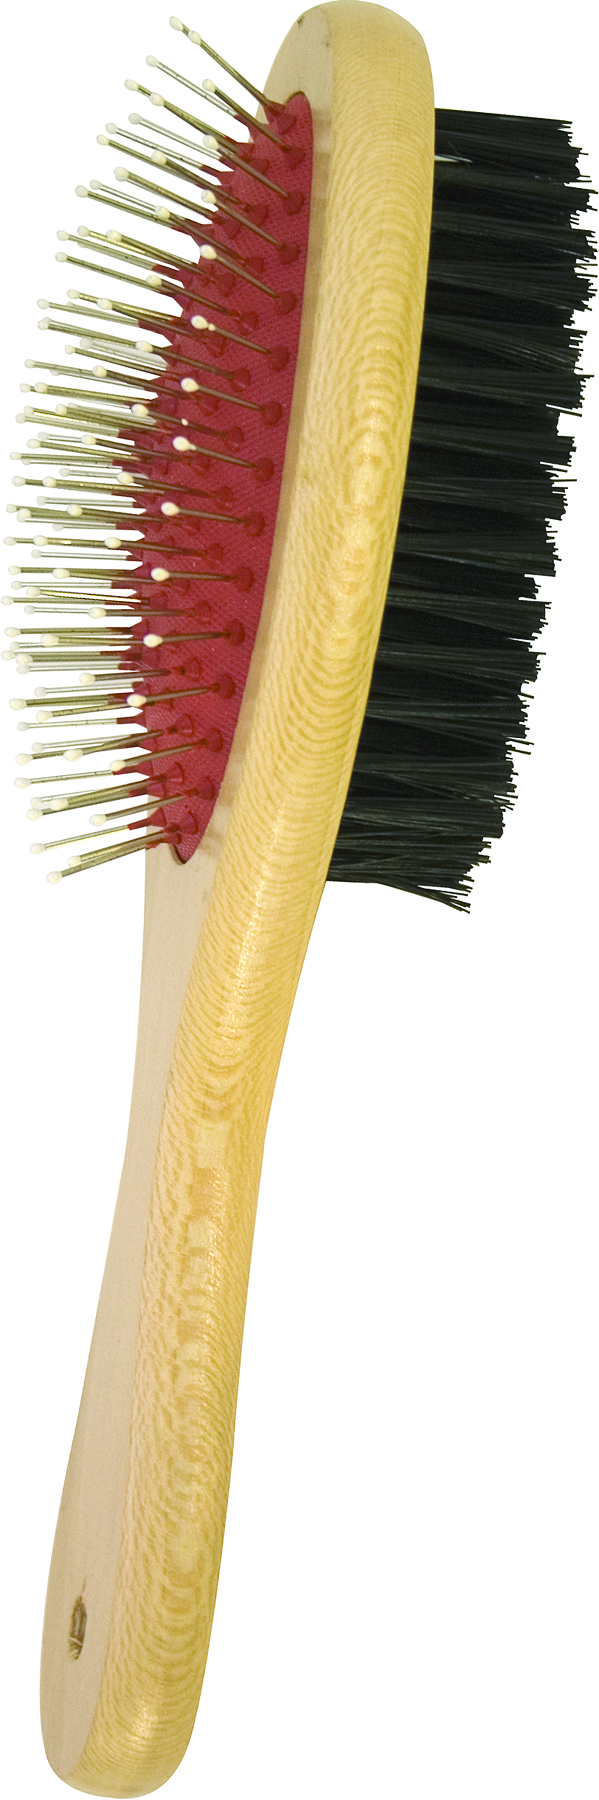 ABETTA Two Sided Brush